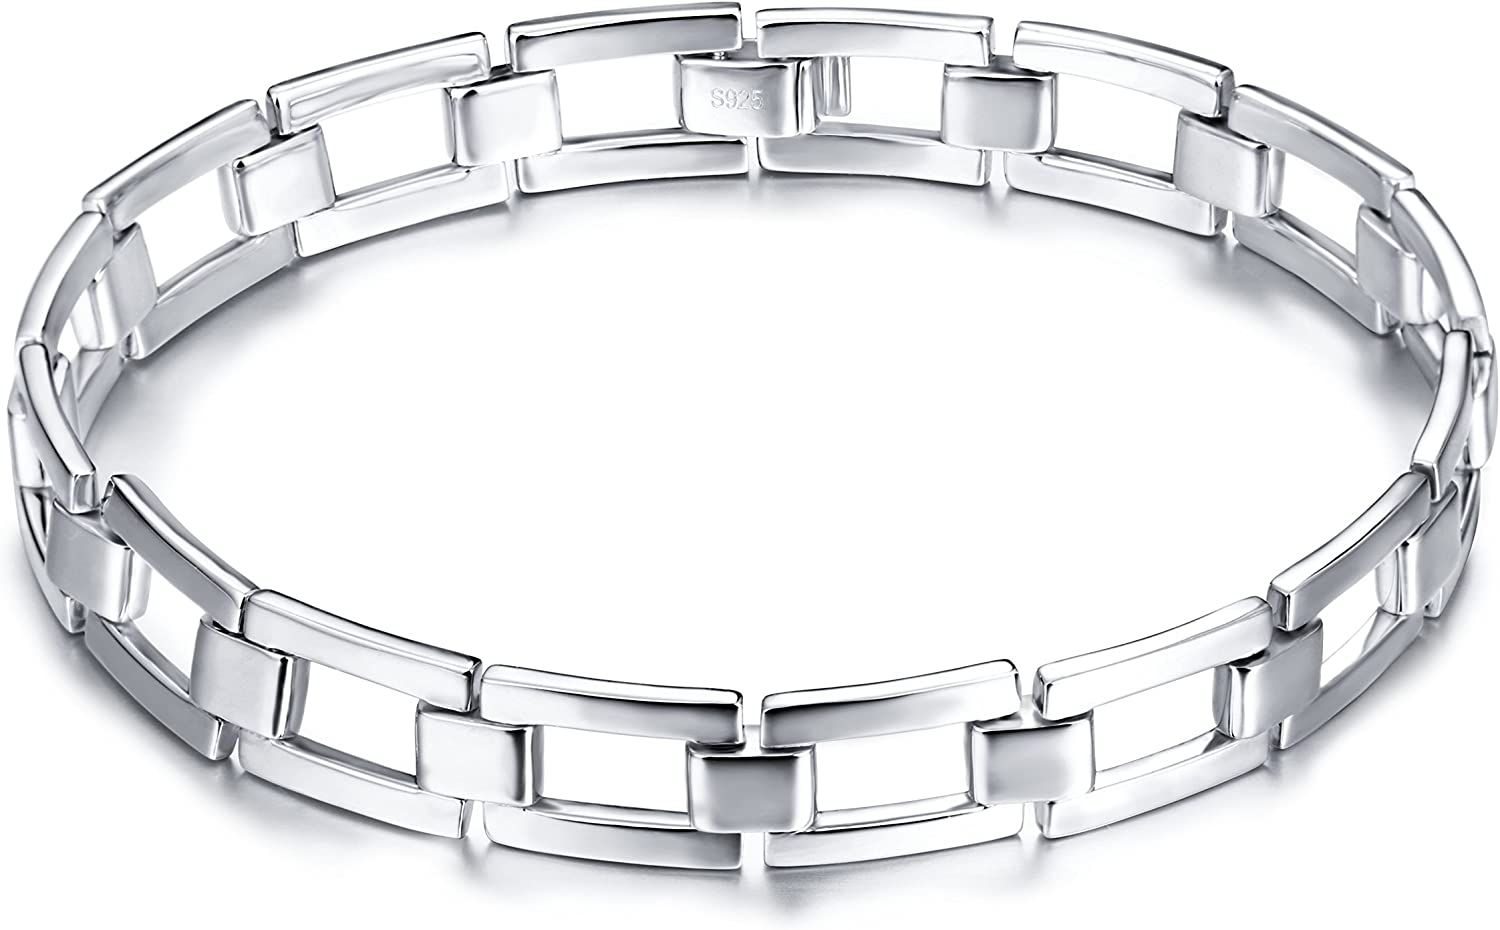 Men's Real S925 Sterling Silver Classic Link Bracelet 8.5 Inch